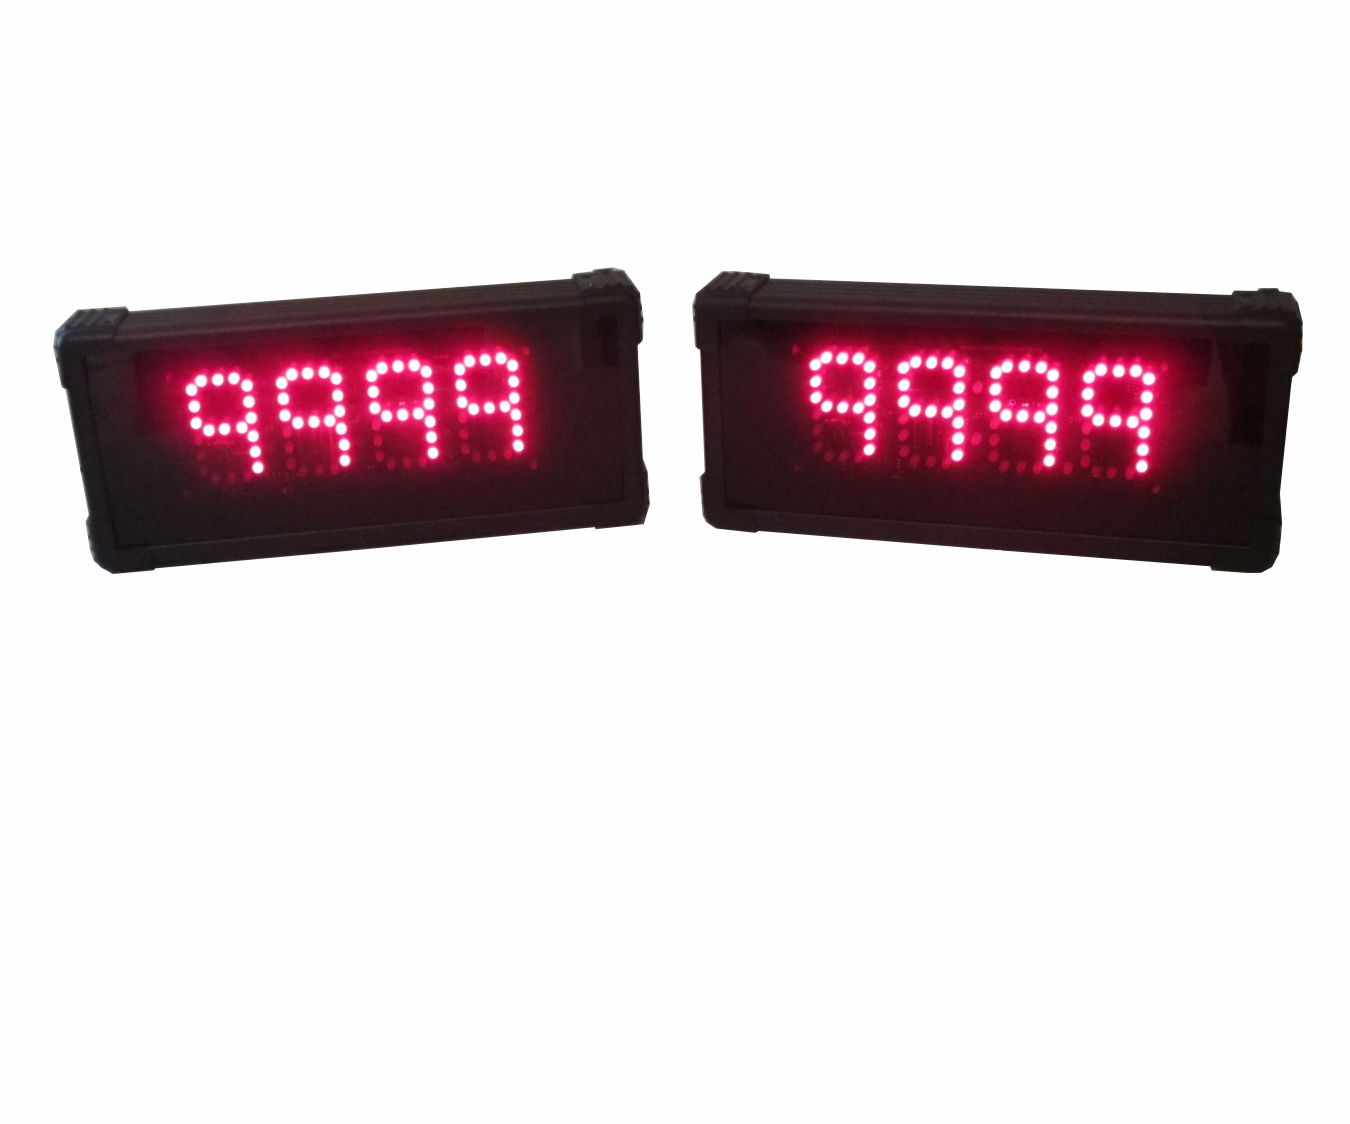 Two-Team 4-digit Gameshow Scoreboards